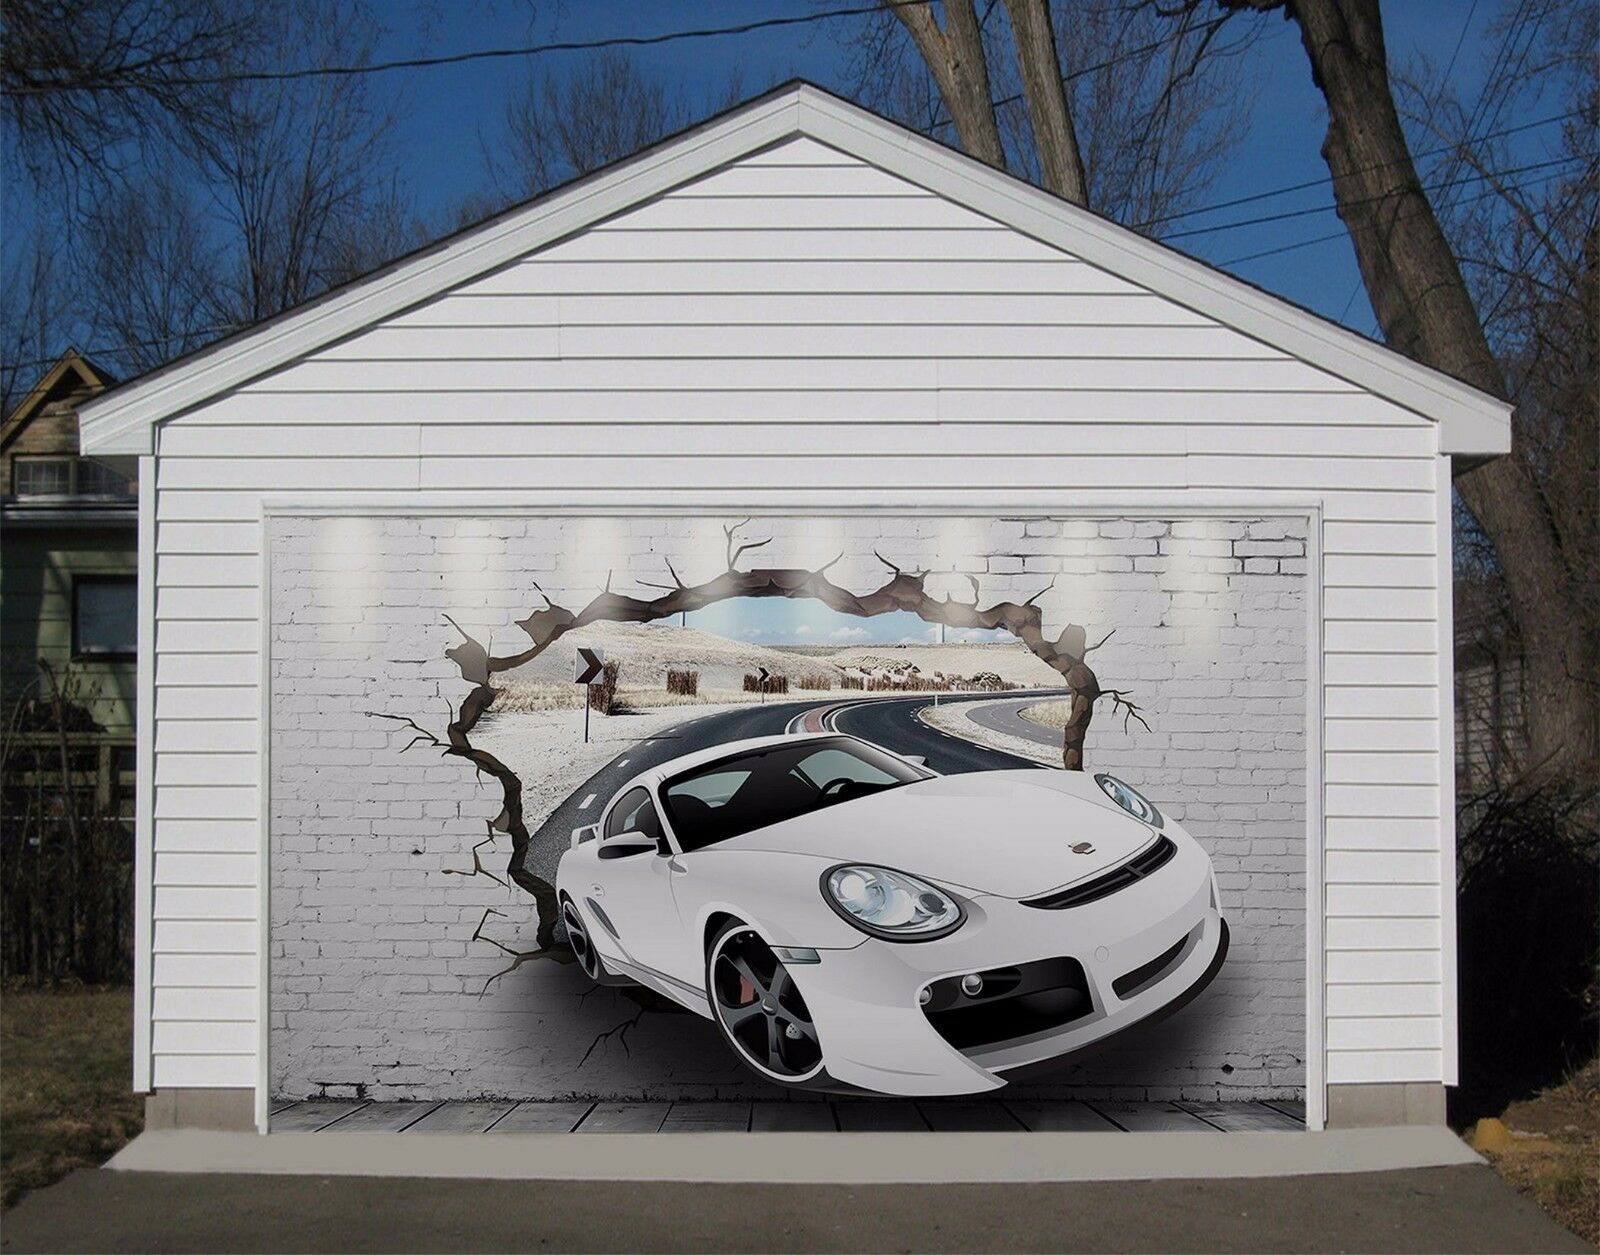 3D Weiß Car 704 Garage Door Murals Wall Print Decal Wall AJ WALLPAPER AU Carly